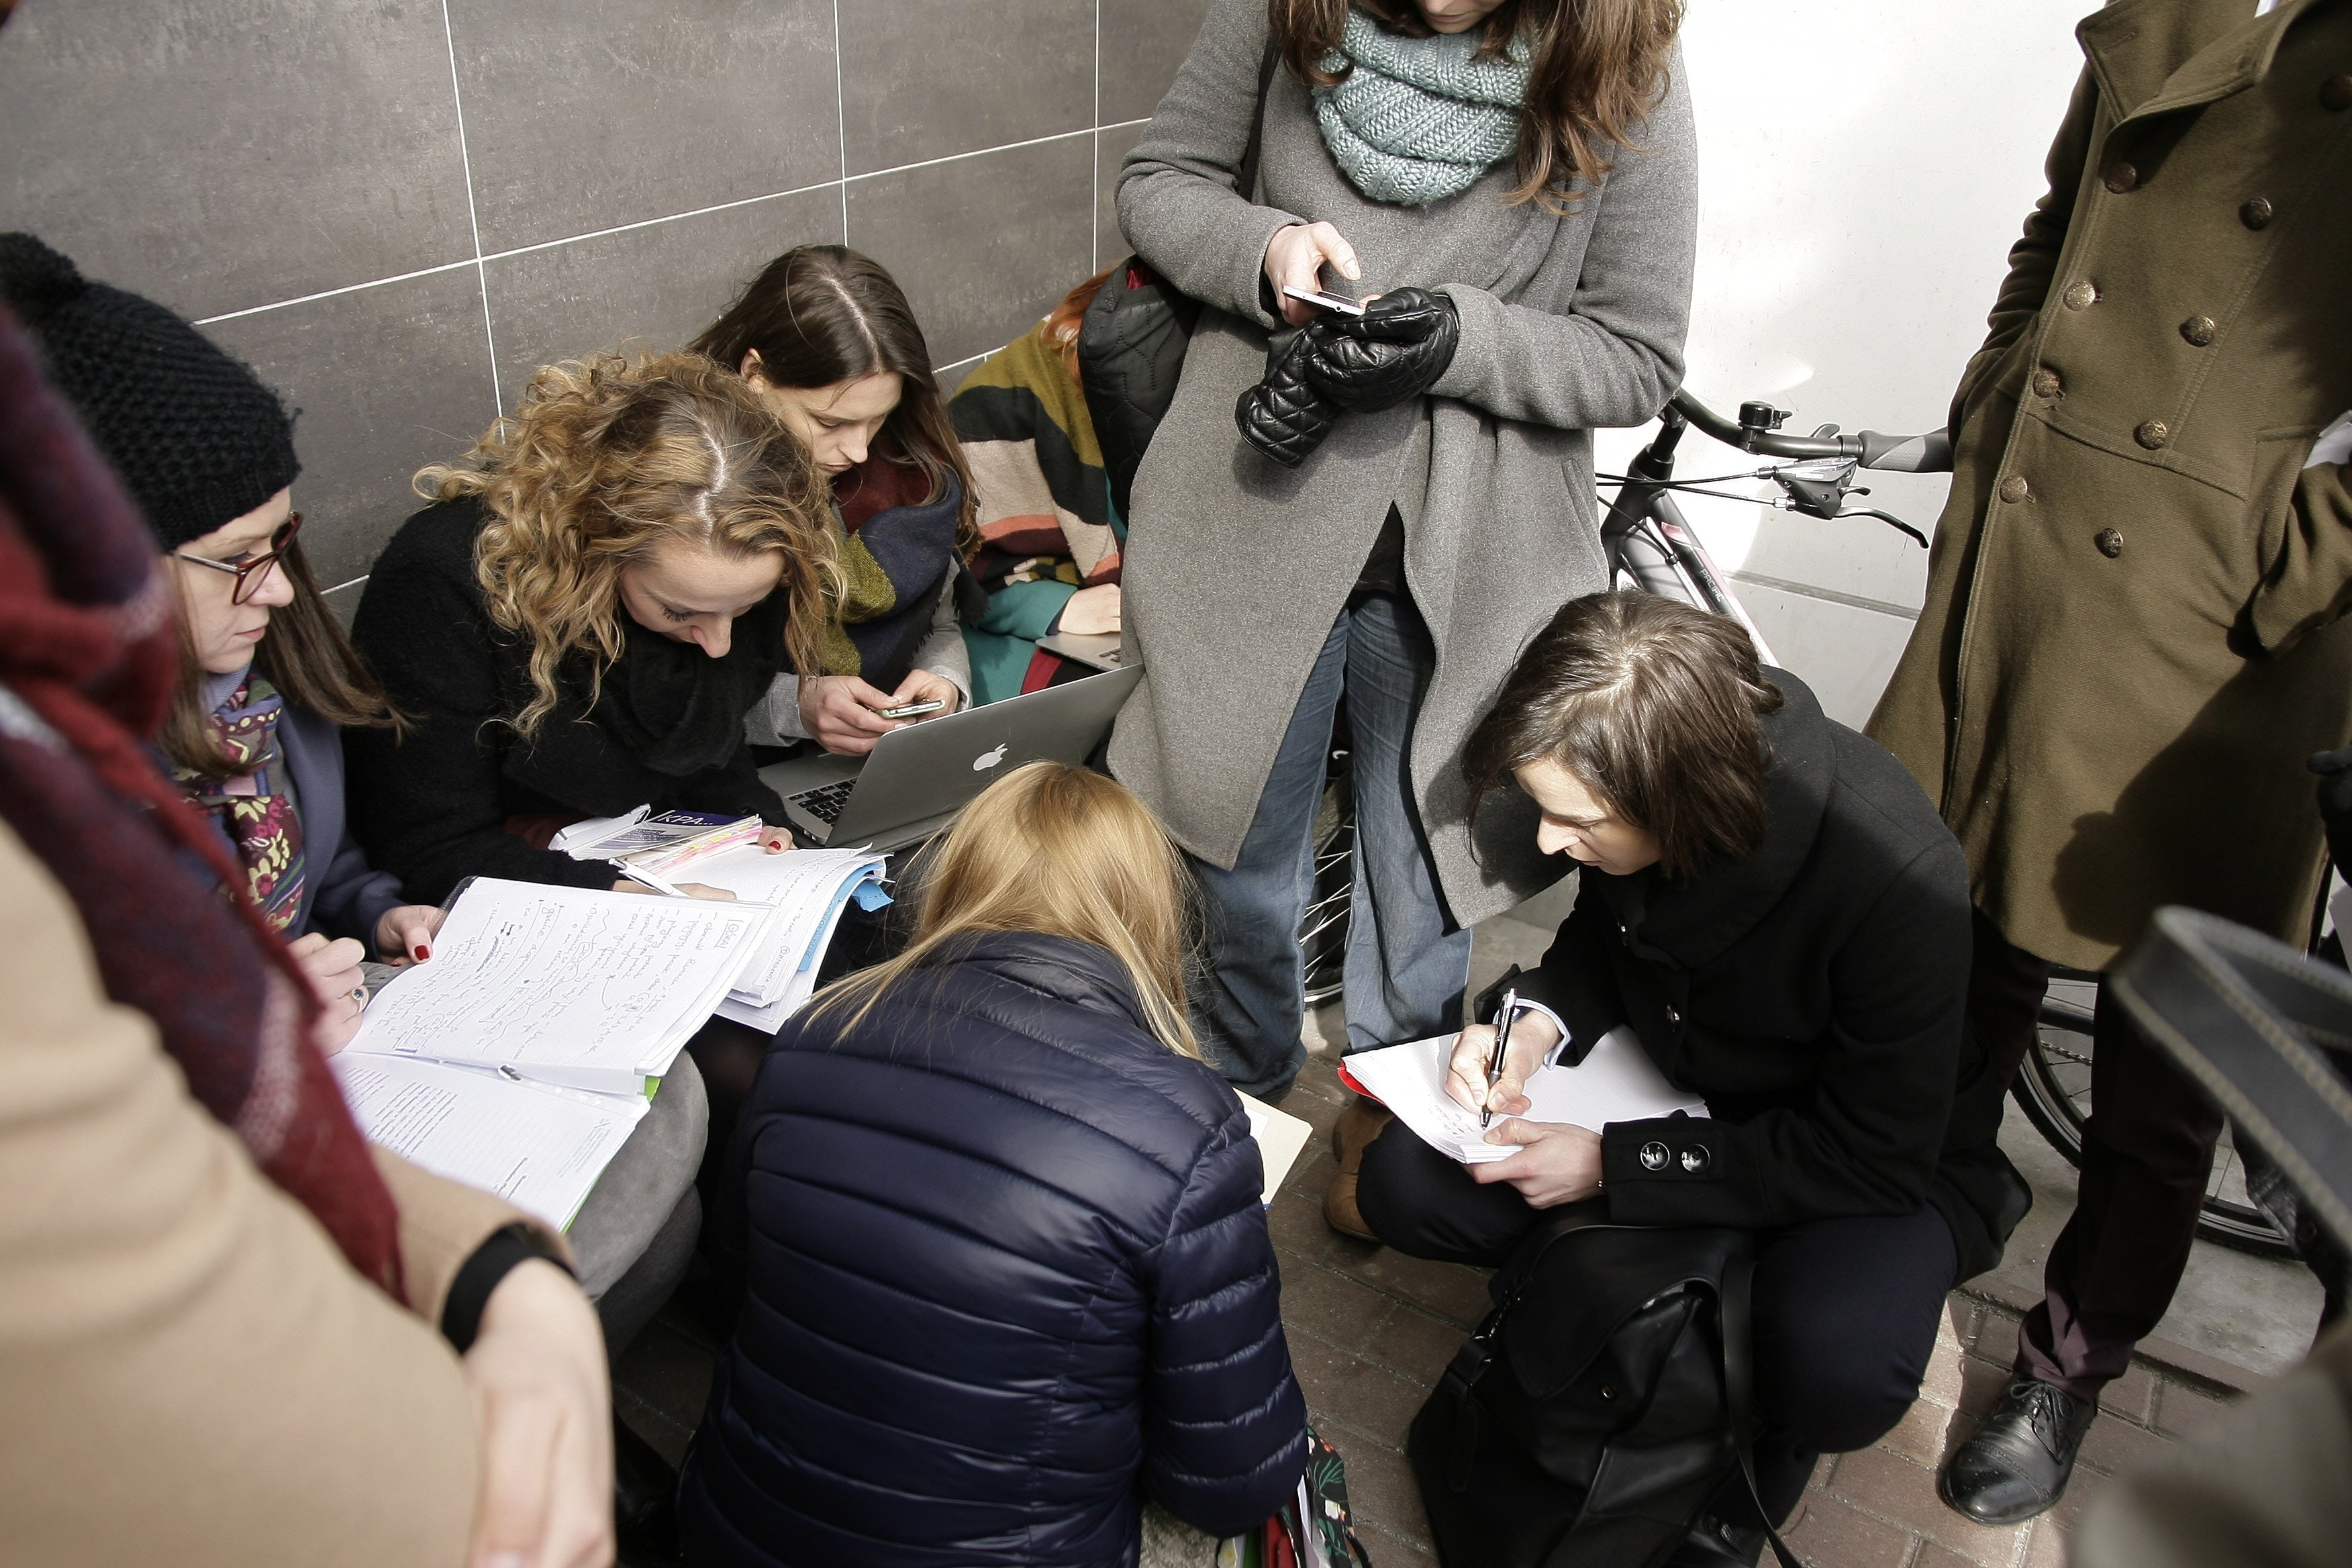 The Terespol crossing station is notorious for rights abuses against asylum seekers. Here, lawyers from human rights organizations huddle at the station to prepare documents for their clients. (Image: HFHR)